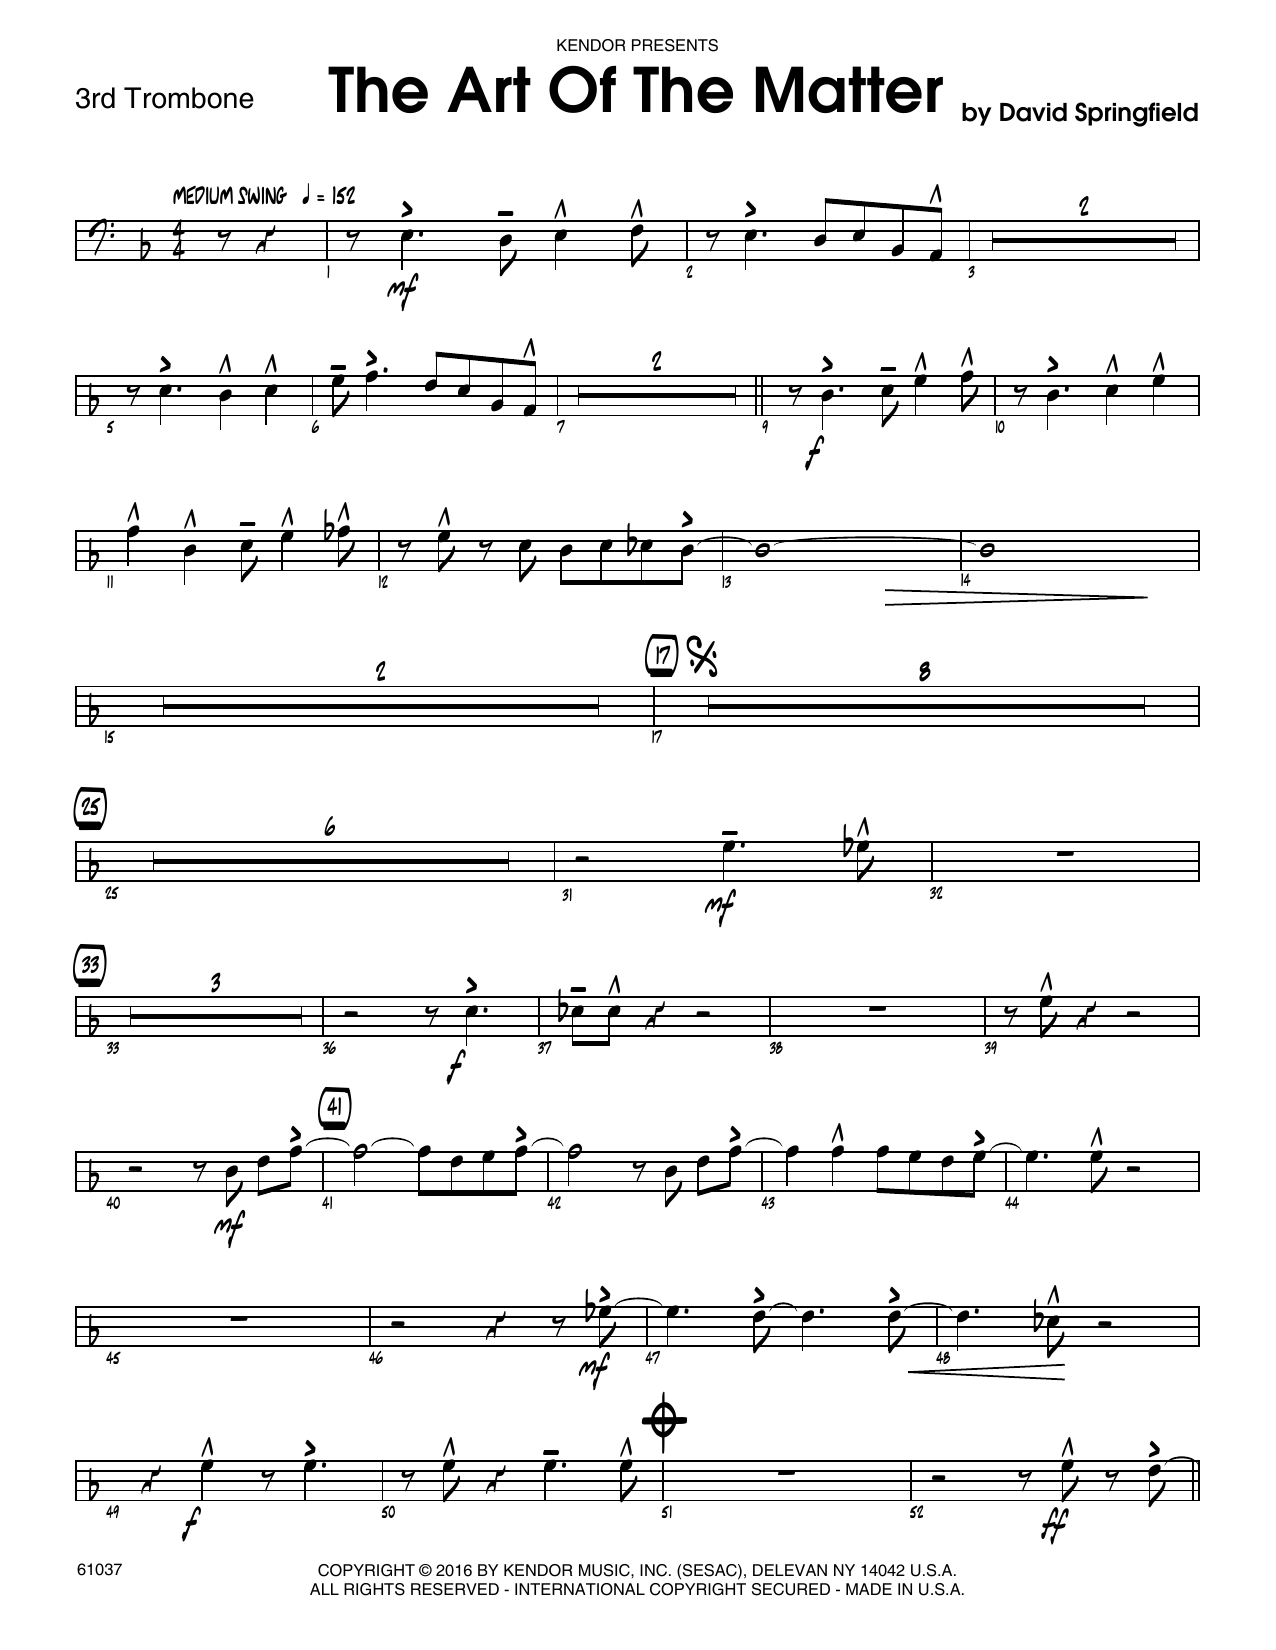 The Art Of The Matter - 3rd Trombone Sheet Music